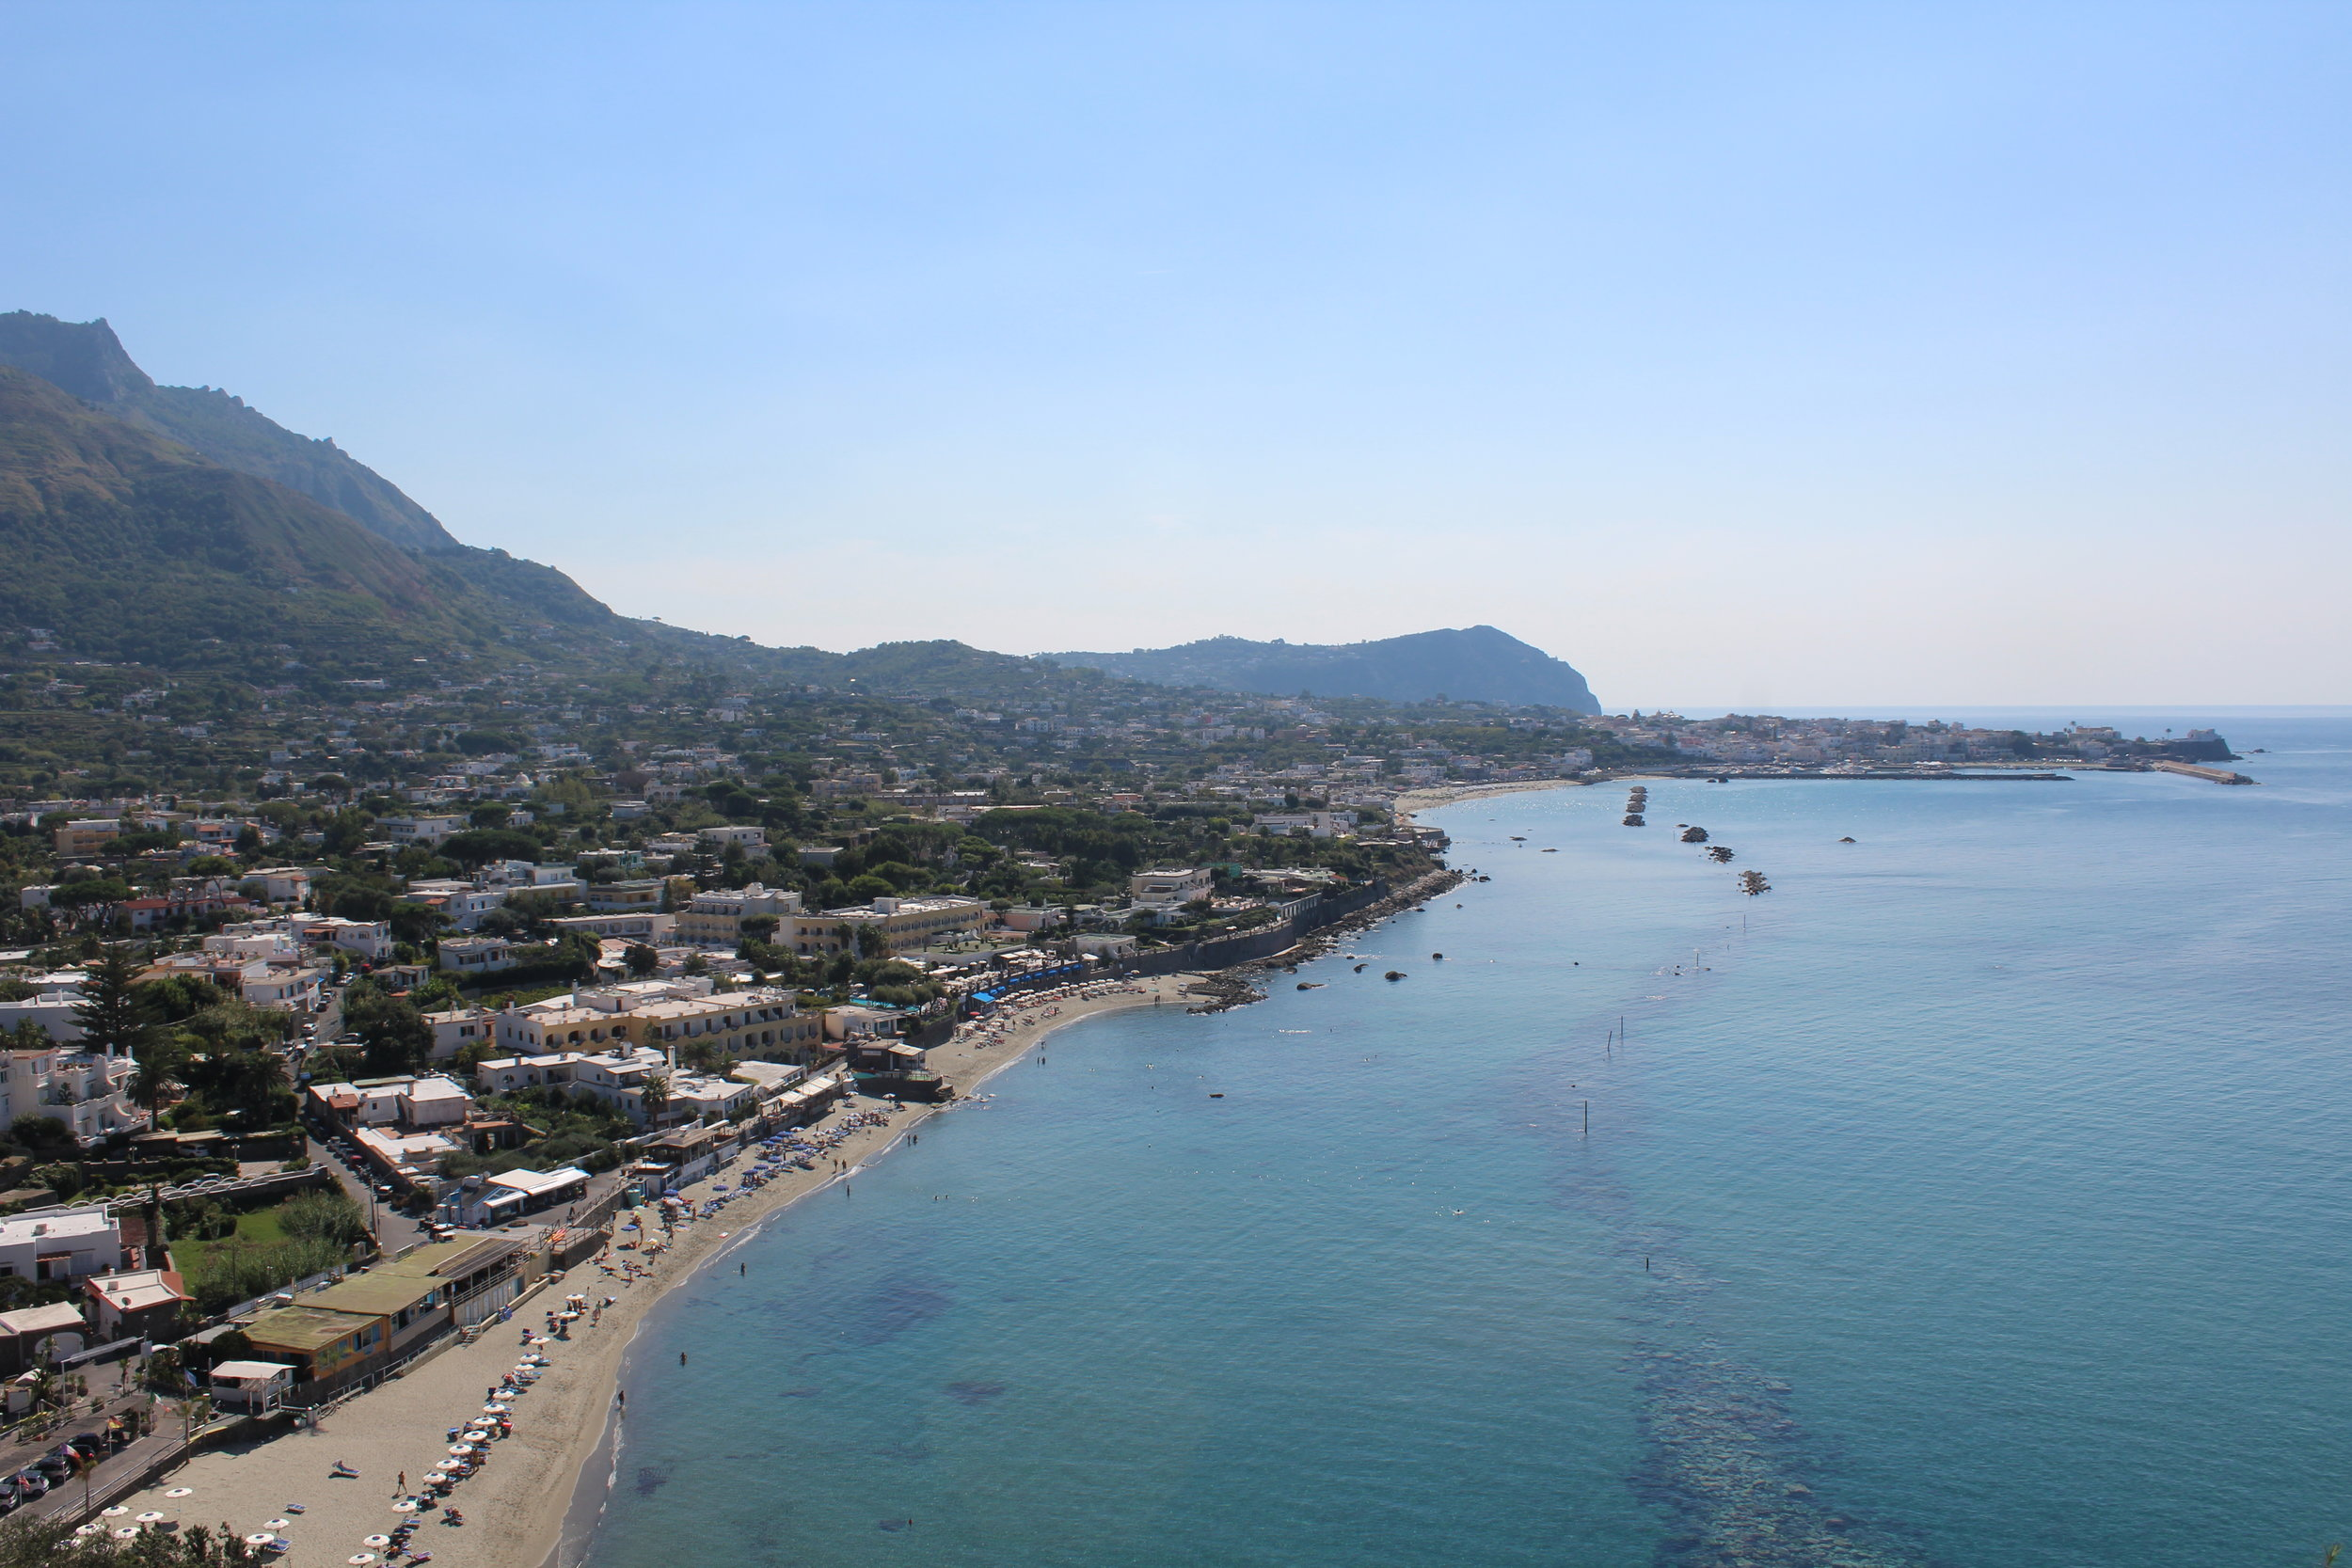 Forio beach on Ischia